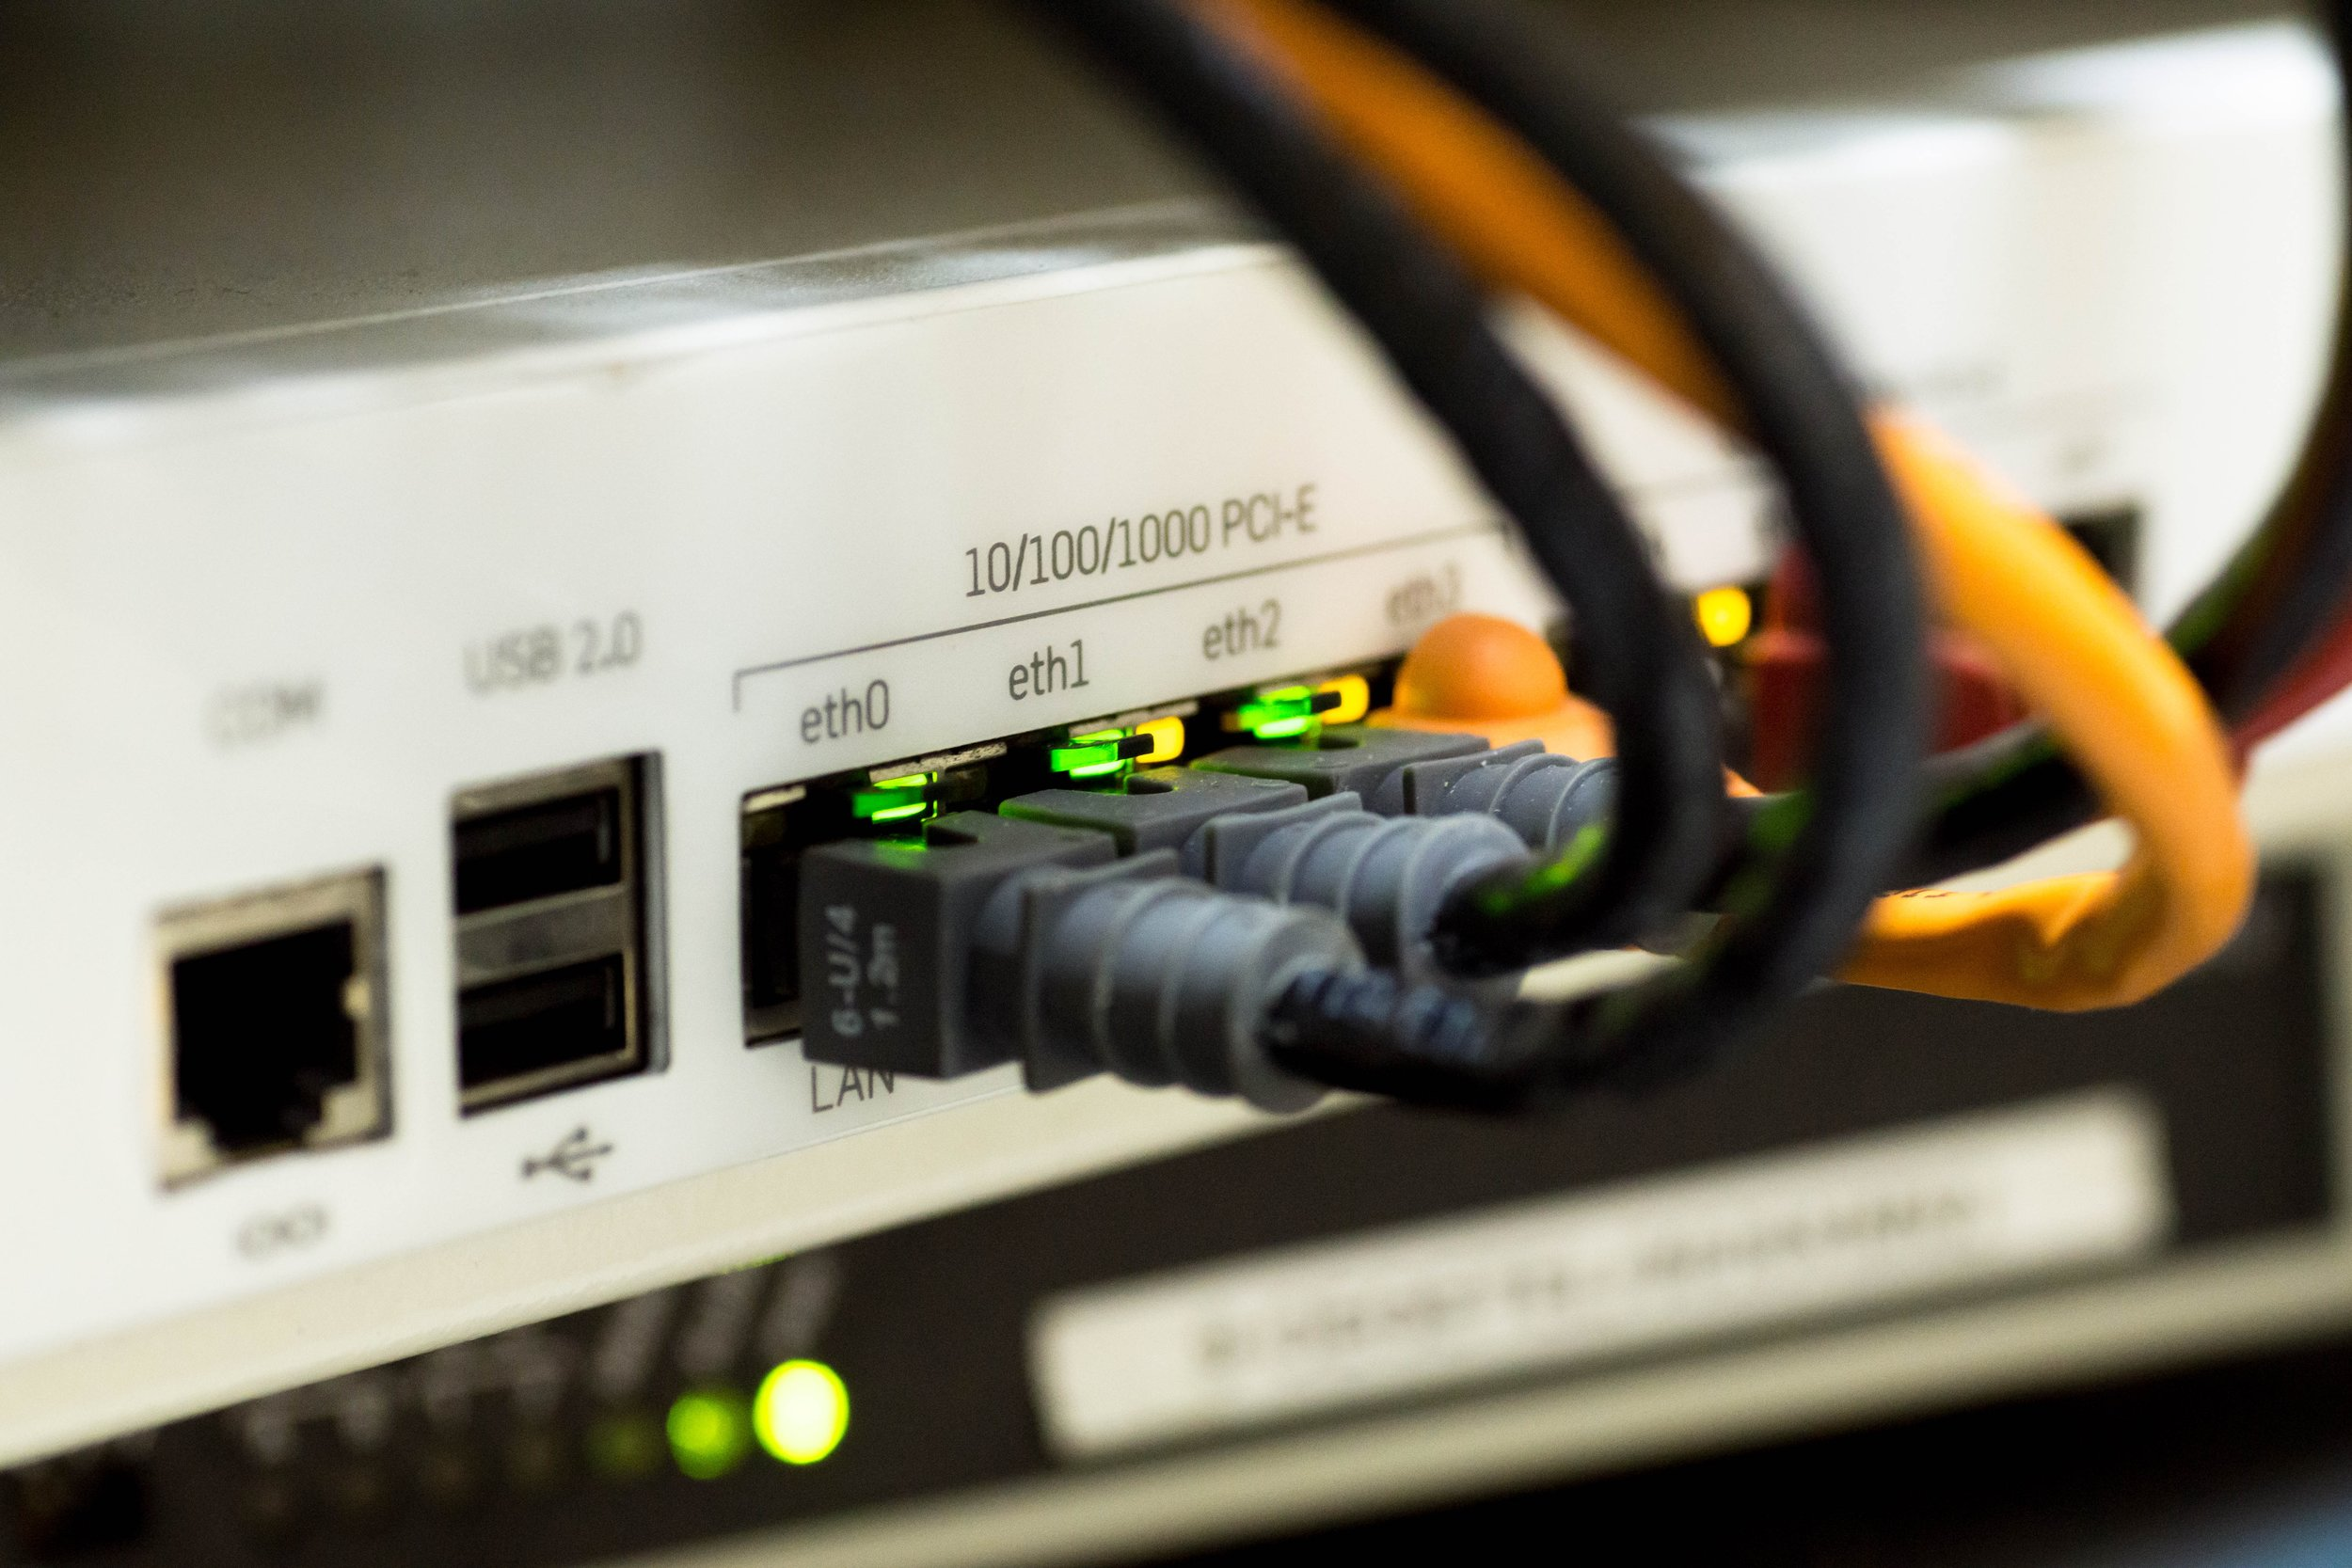 network-cable-ethernet-computer-159304.jpeg